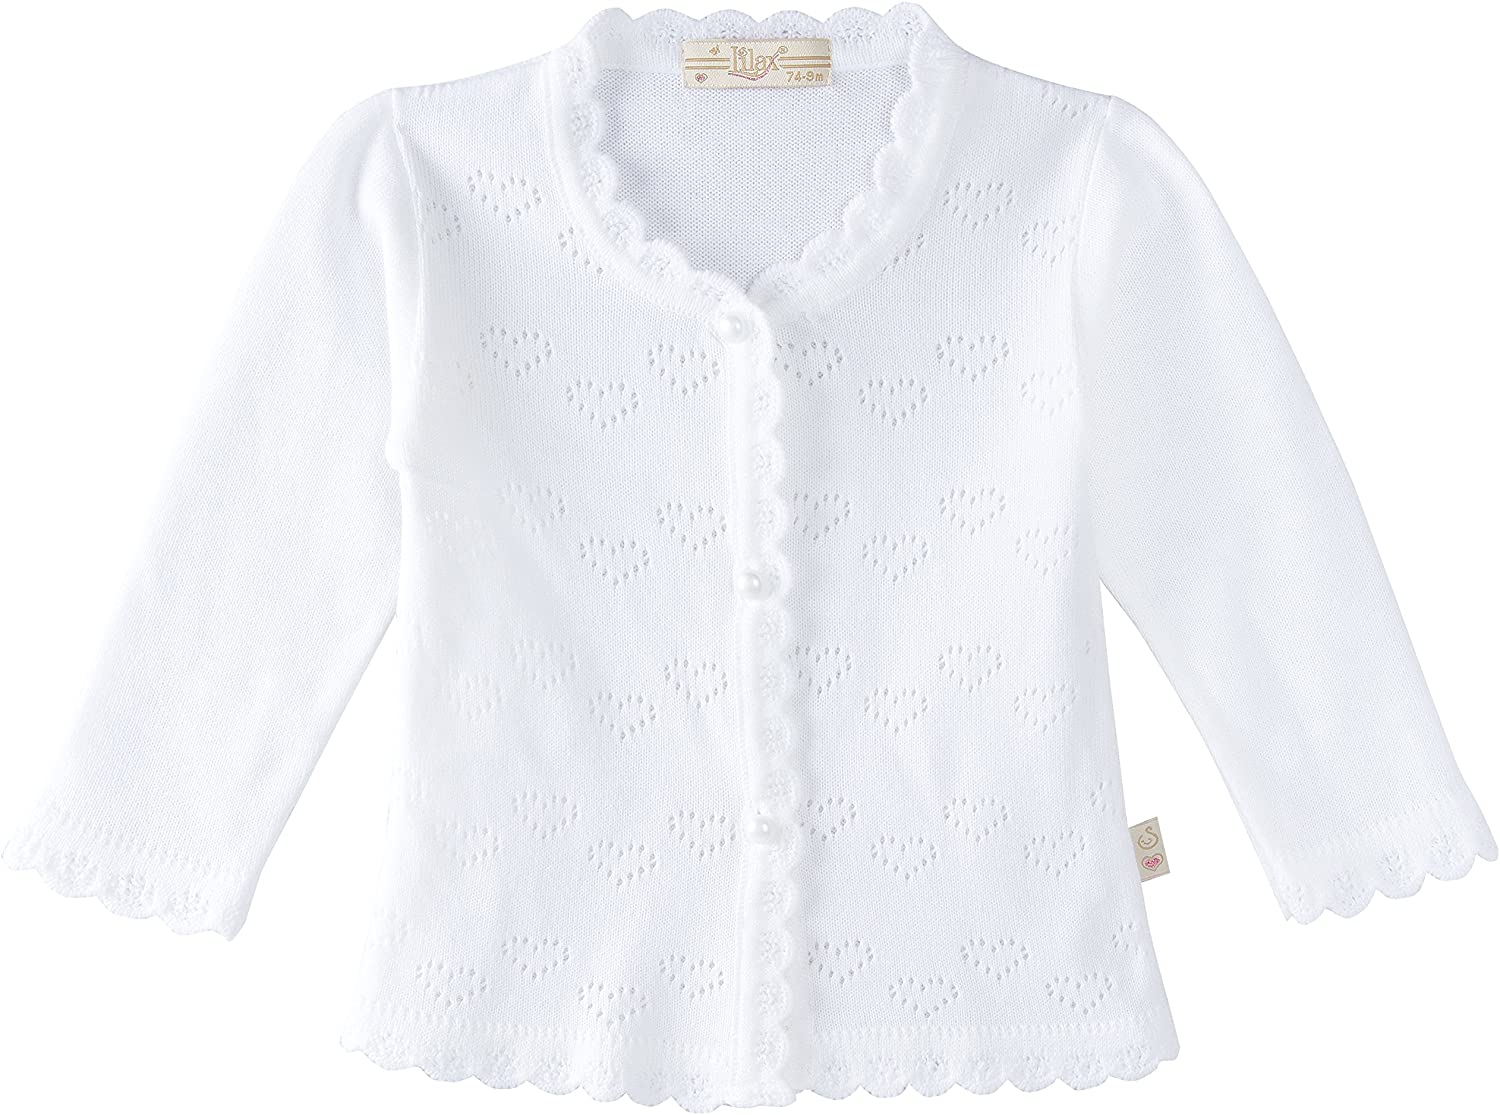 Lilax Baby Girls' Little Hearts Knit Cardigan Sweater